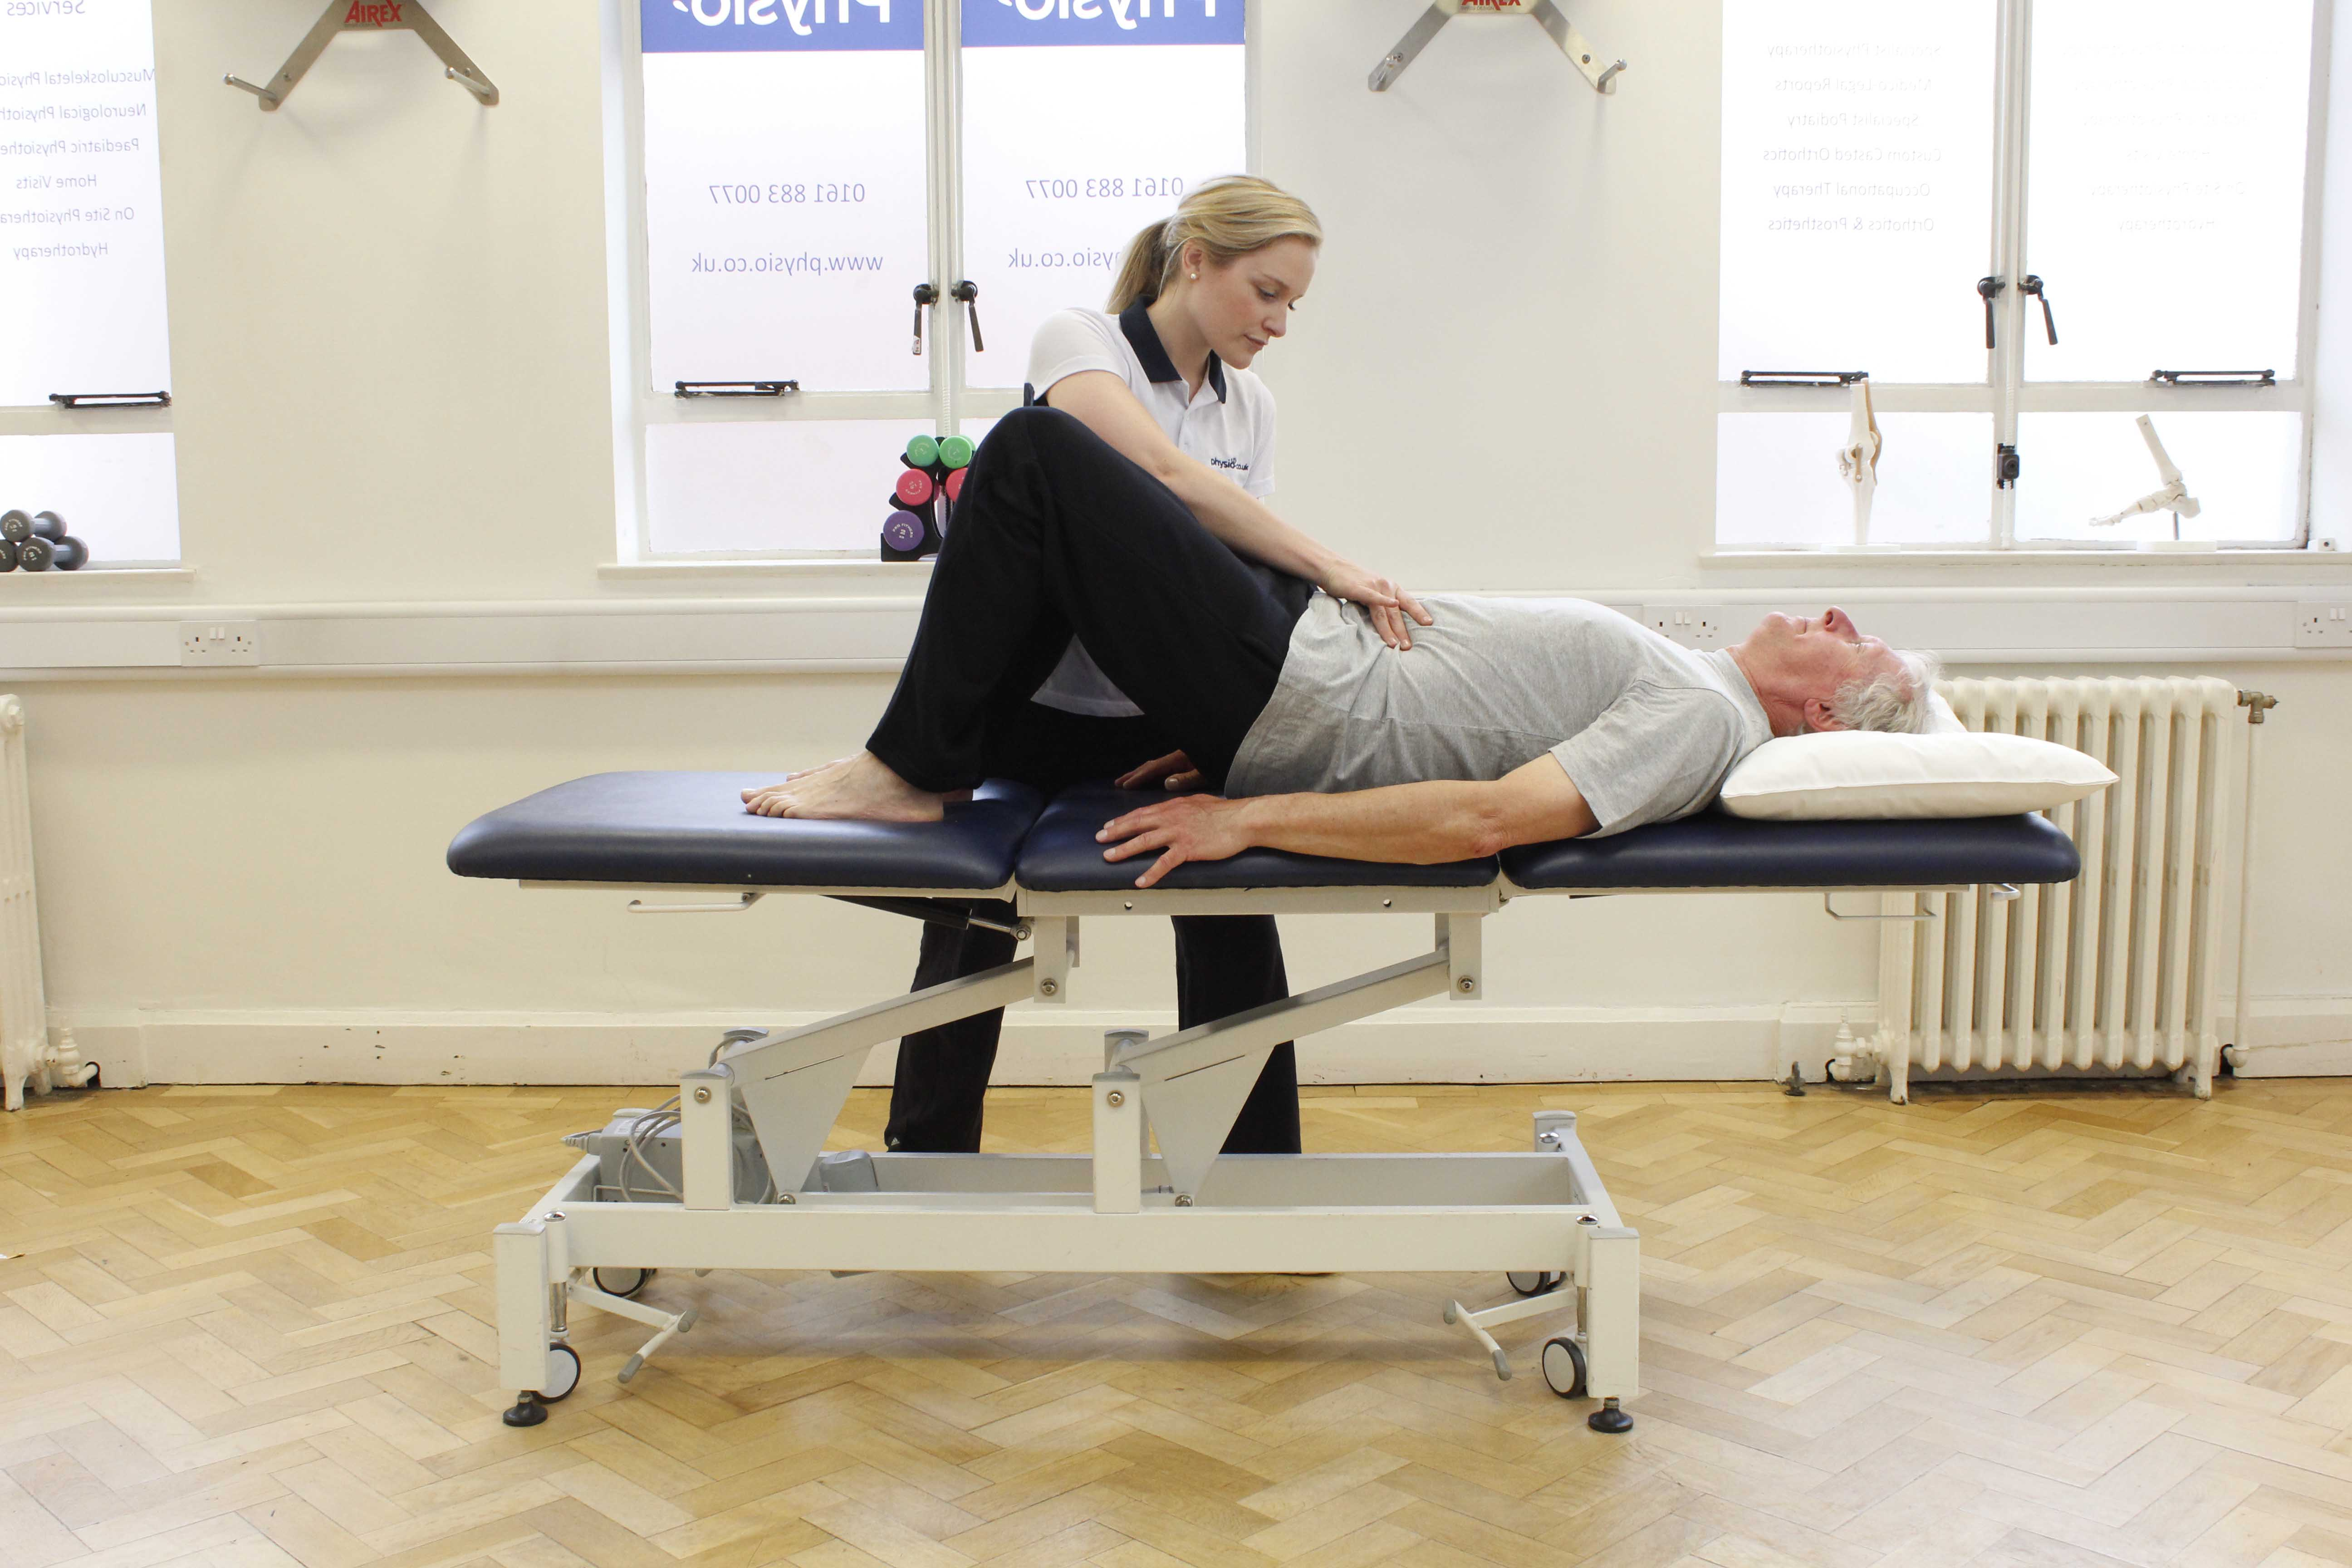 Improving abdominal and pelvic muscle control with assistance from a specialist physiotherapist